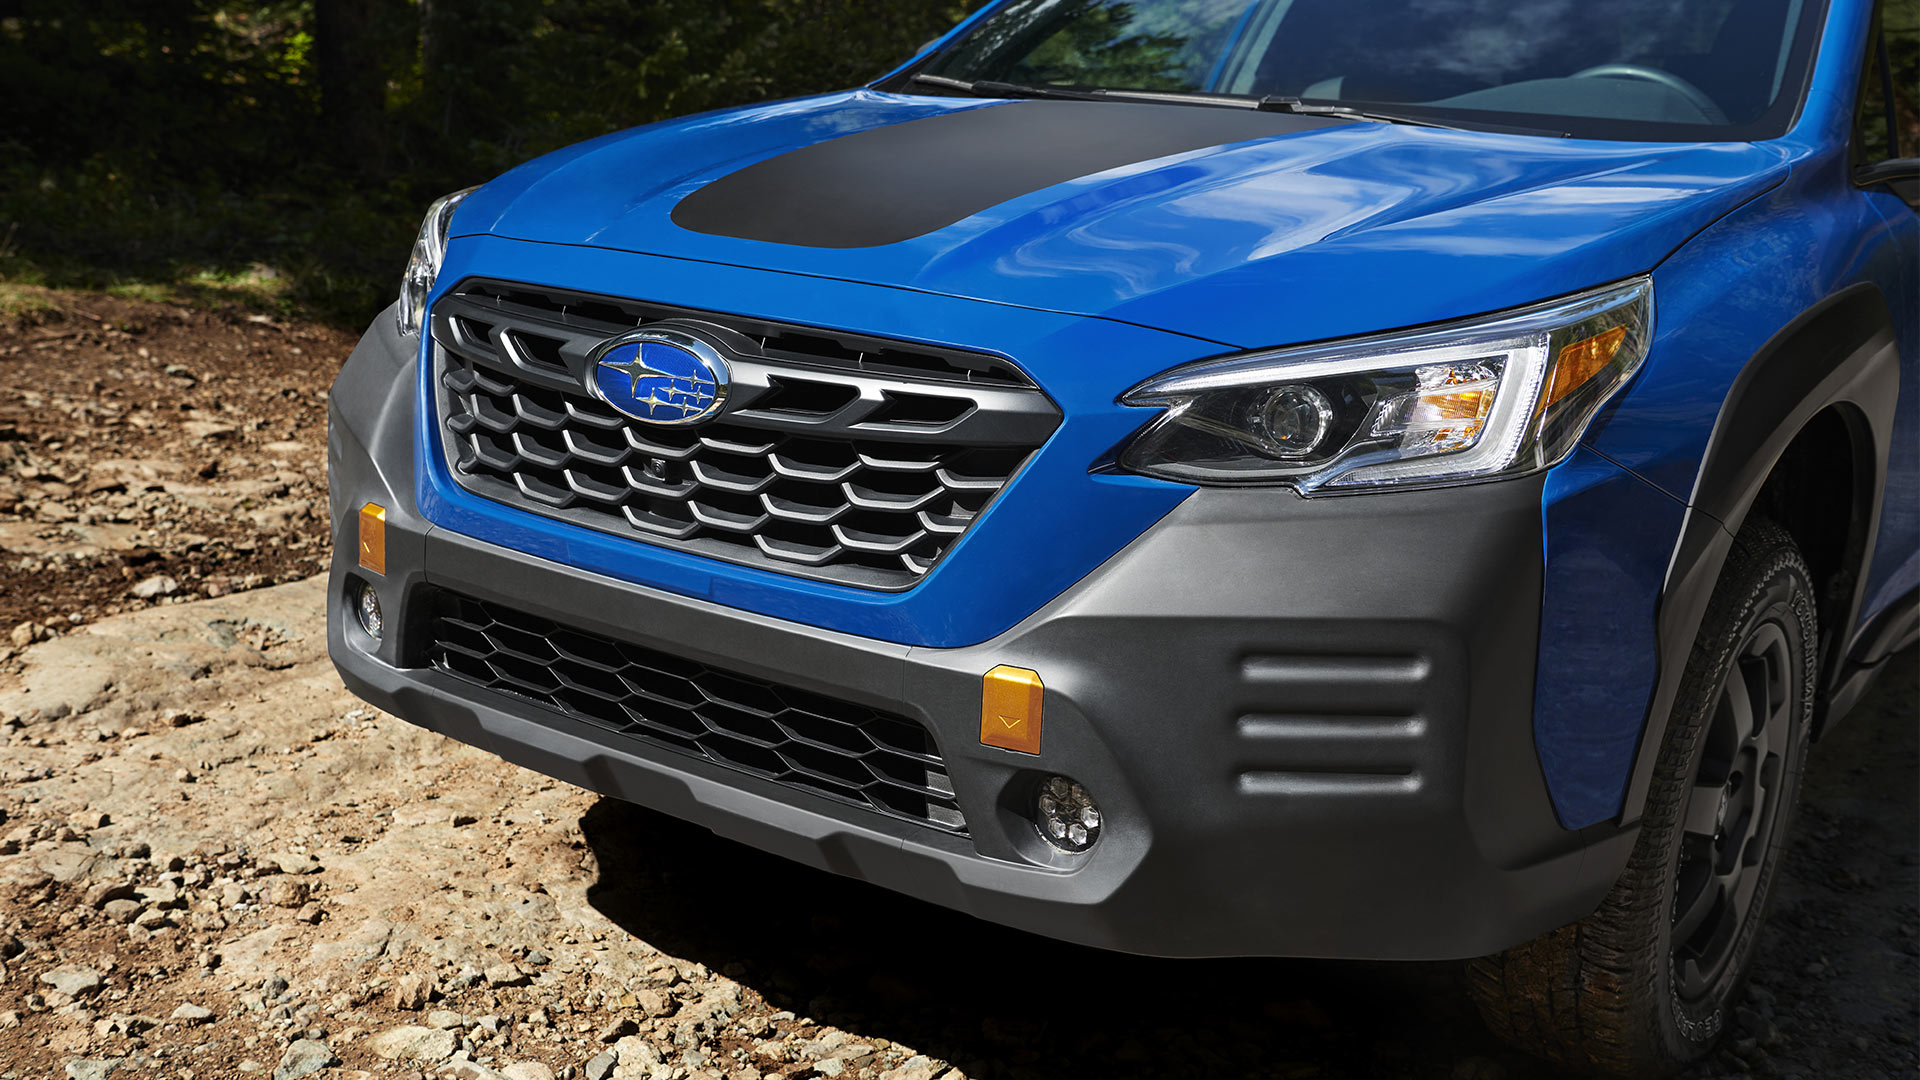 The Subaru Outback Wilderness Front Close-Up